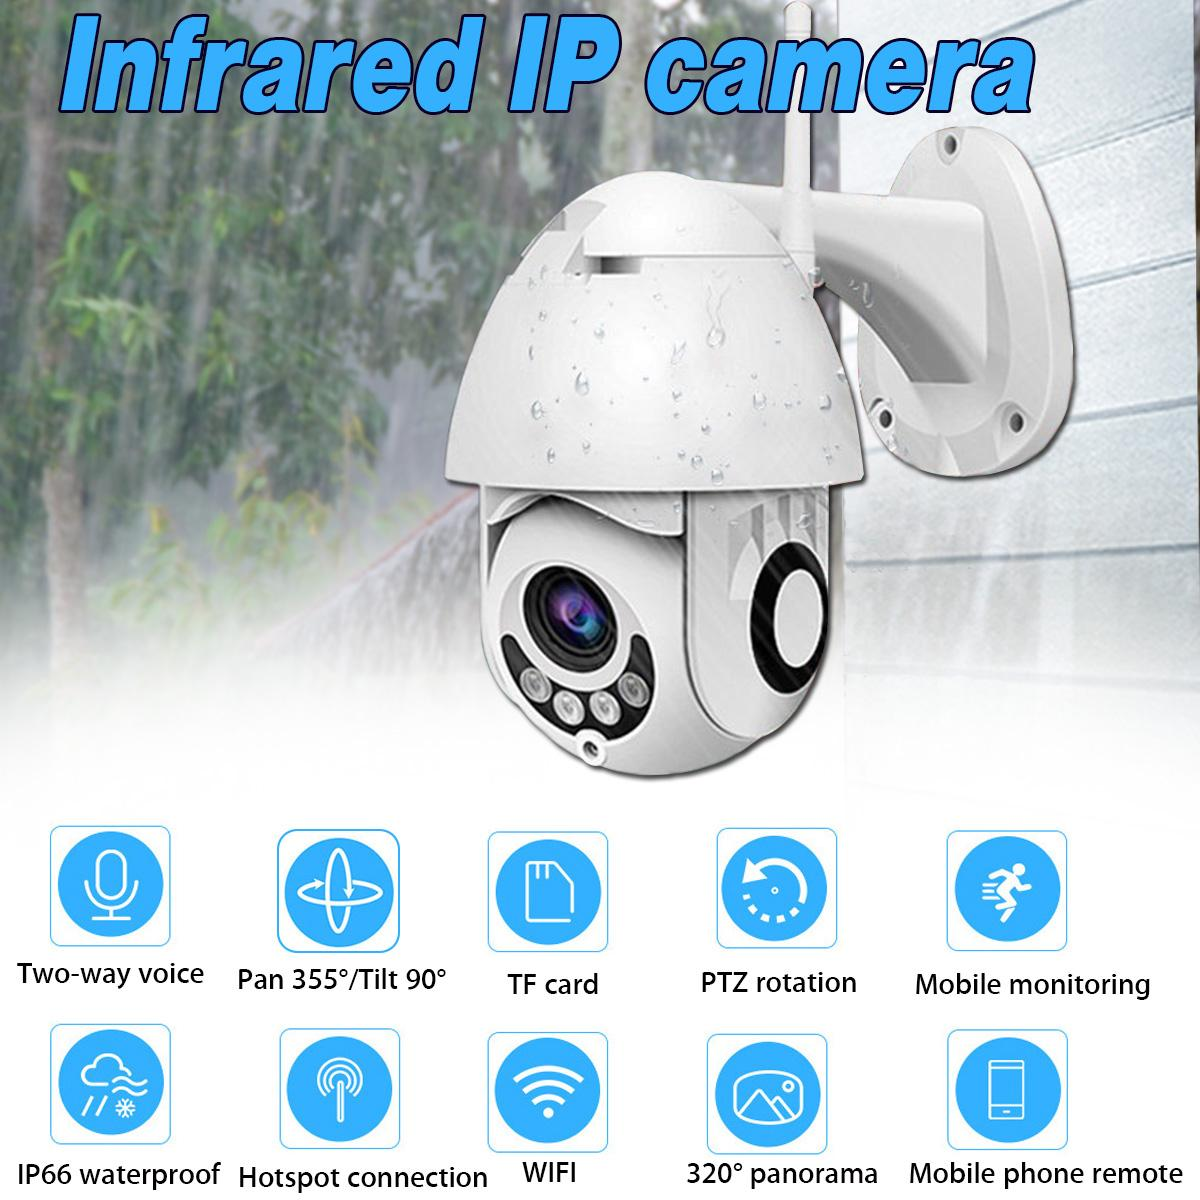 3.6mm Wifi IP Camera 1080P HD Remote Monitor Panoramic Dome CCTV Security Cameras Fix Focusing Home Video Surveillance EU Plug3.6mm Wifi IP Camera 1080P HD Remote Monitor Panoramic Dome CCTV Security Cameras Fix Focusing Home Video Surveillance EU Plug